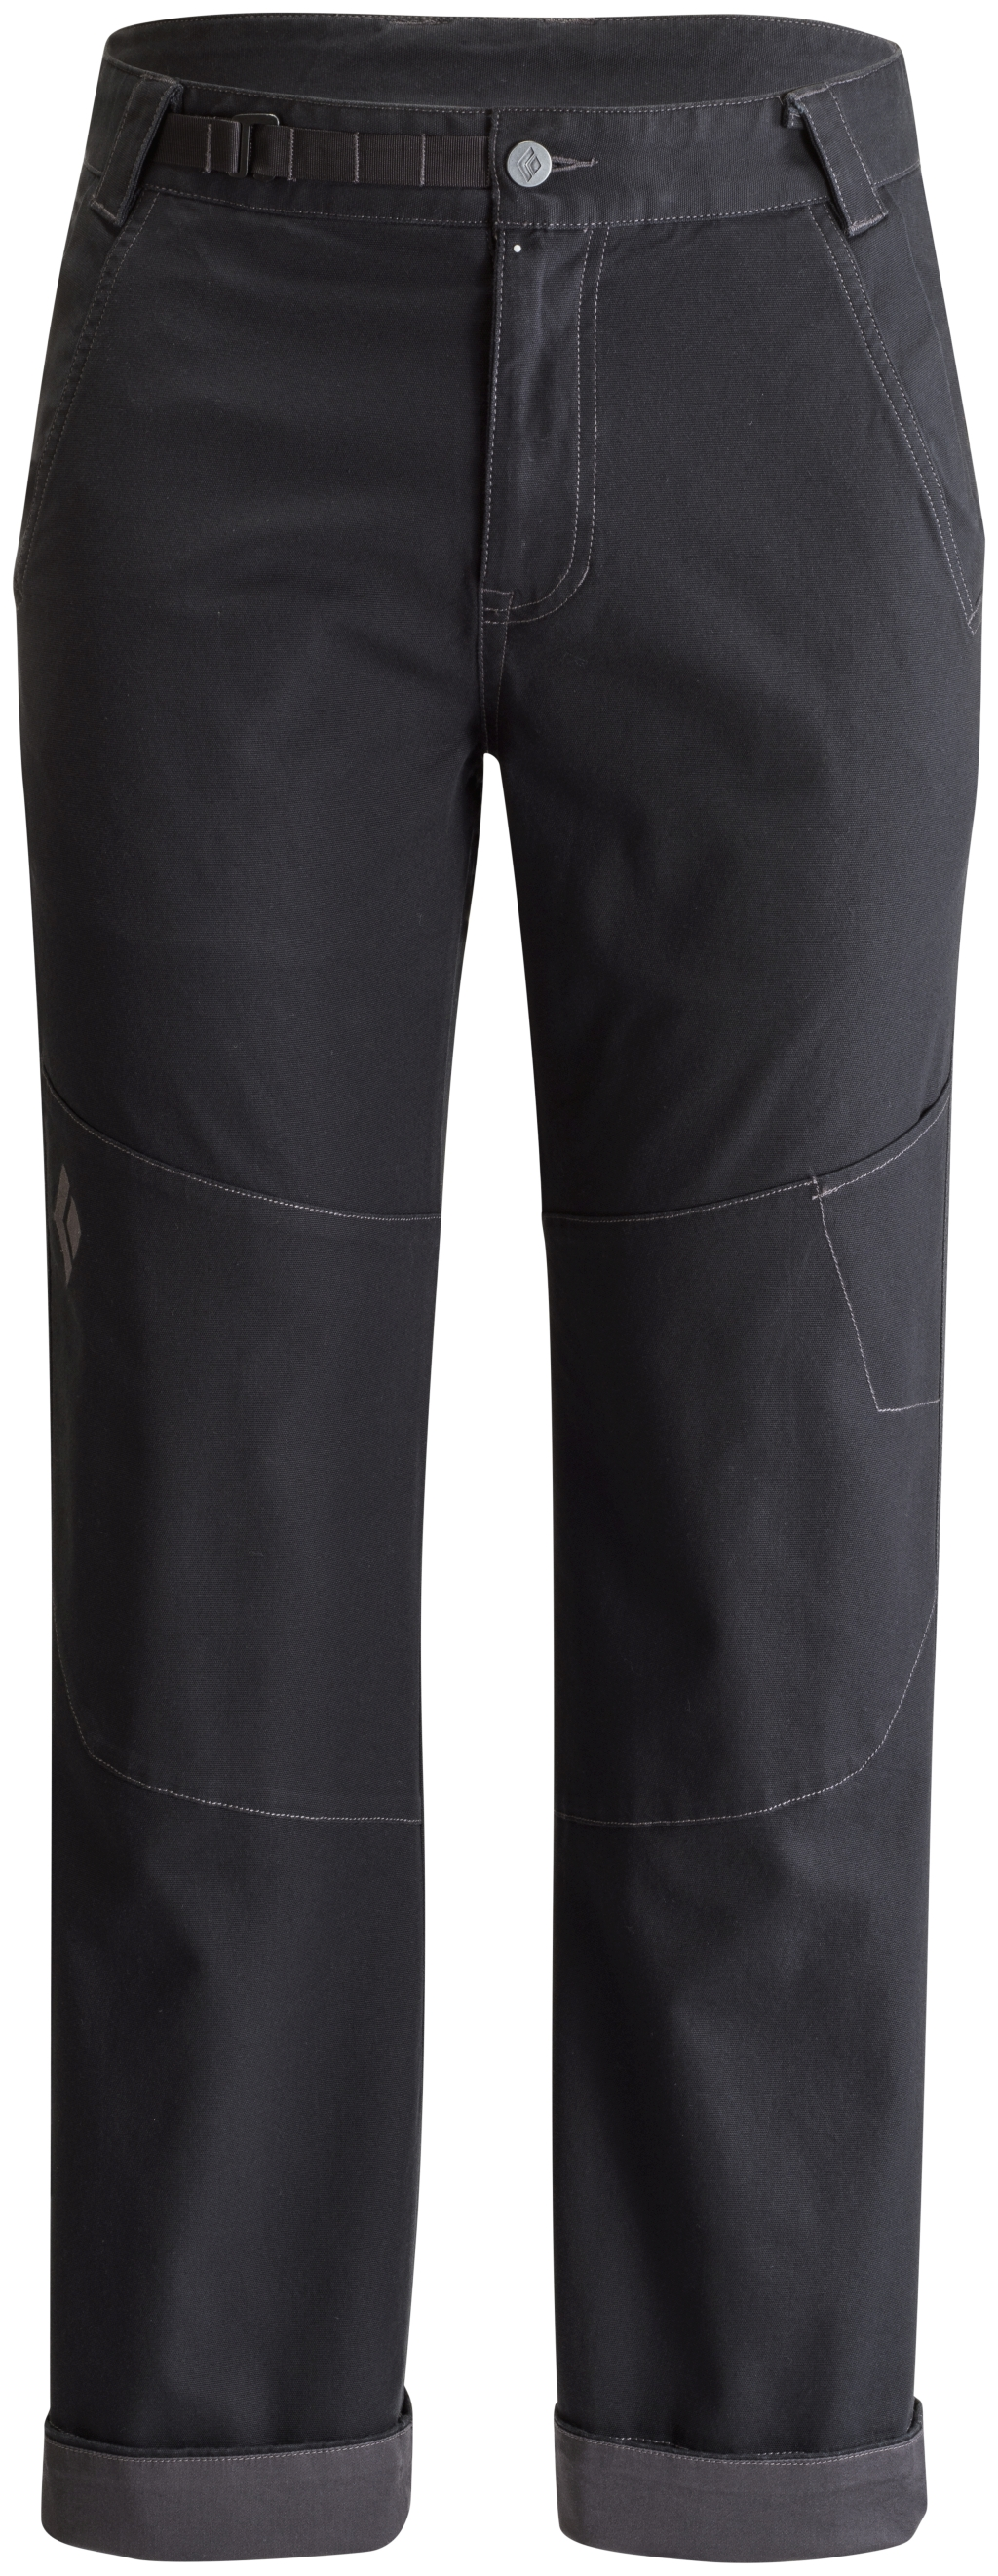 Black Diamond Dogma Pants Black-30